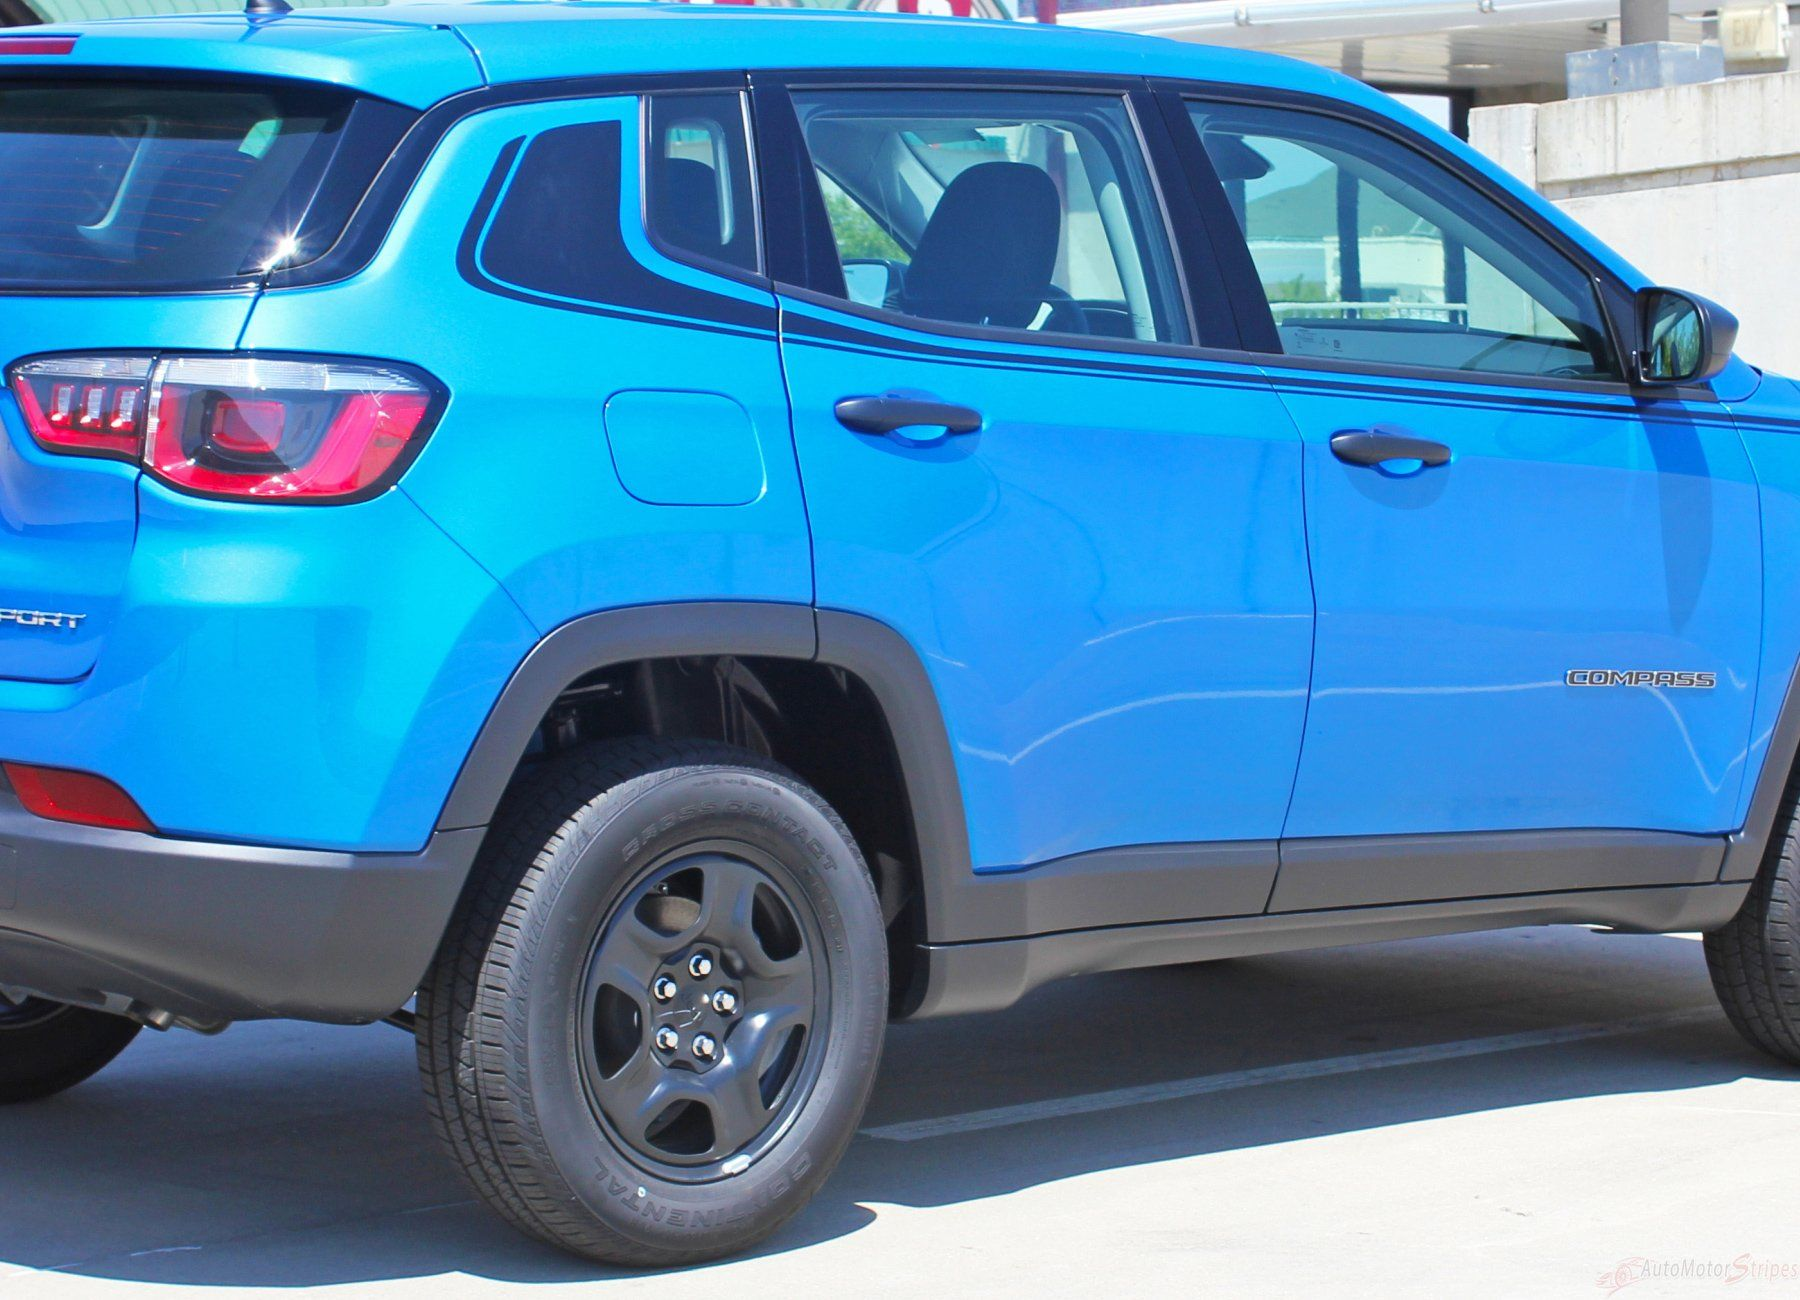 2017 2020 Jeep Compass Stripes Vinyl Graphics Decals Door Body Line Accent 3m Altitude Jeep Compass Jeep Vinyl Graphics